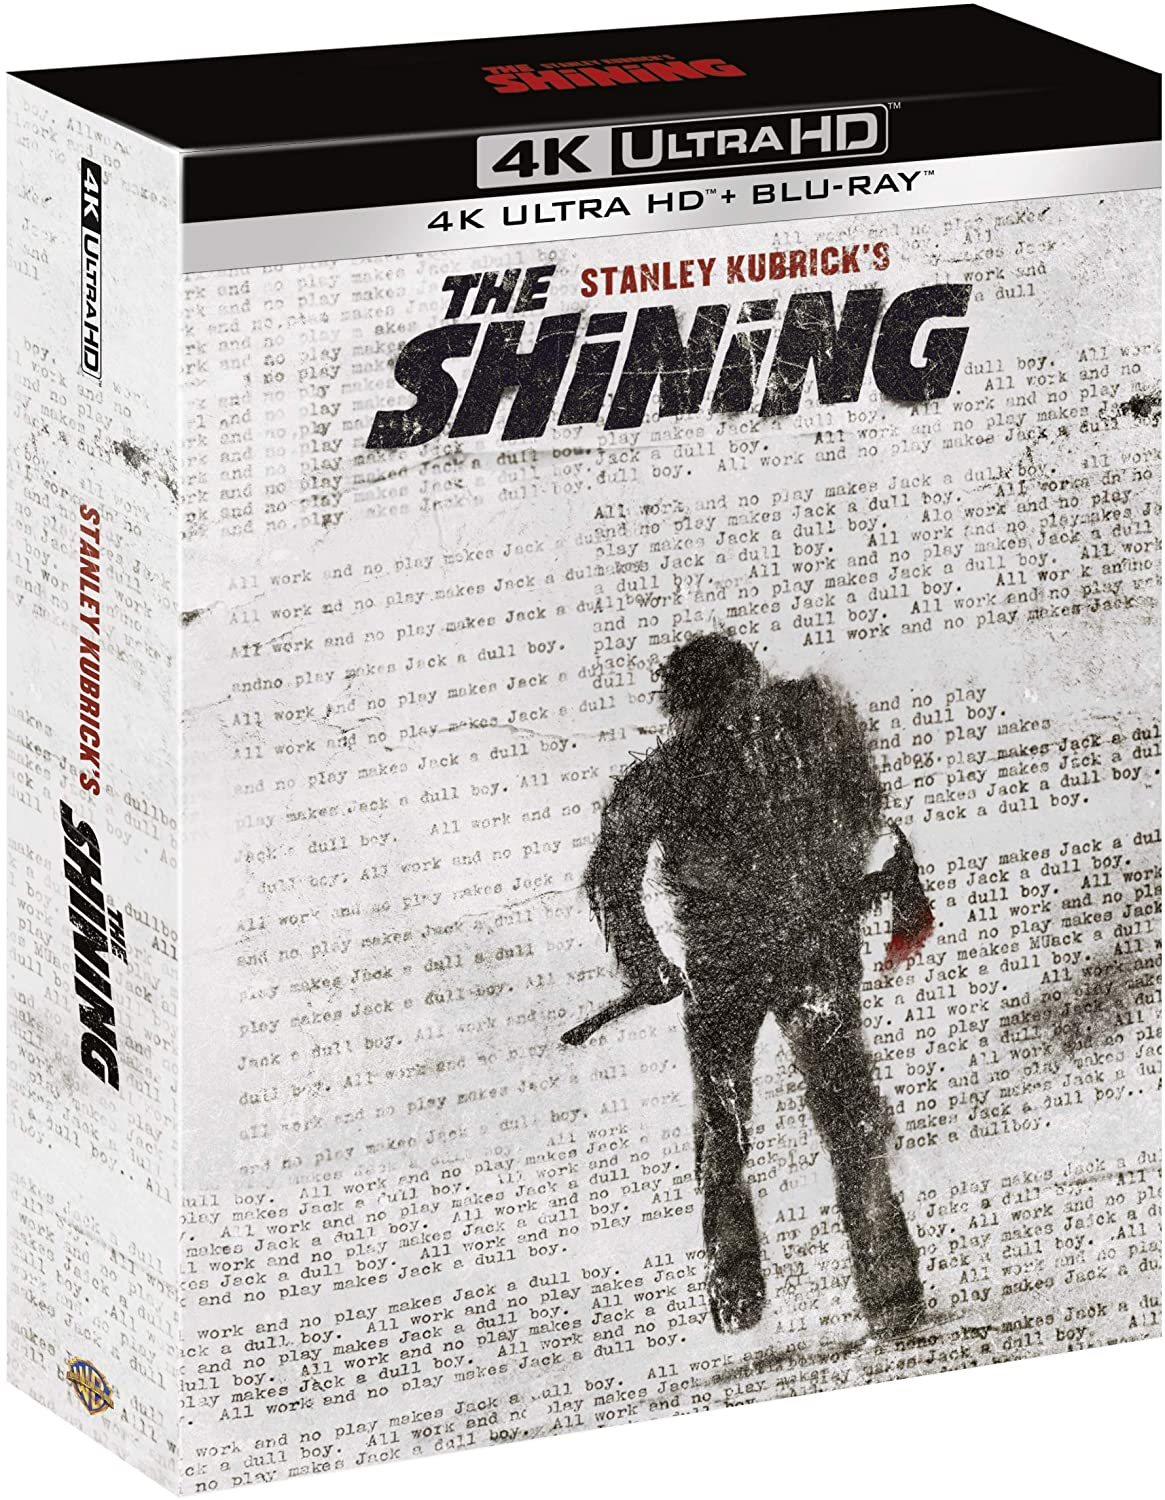 The Shining 40th Anniversary Special Edition UK 4K Ultra HD Blu-Ray 2020